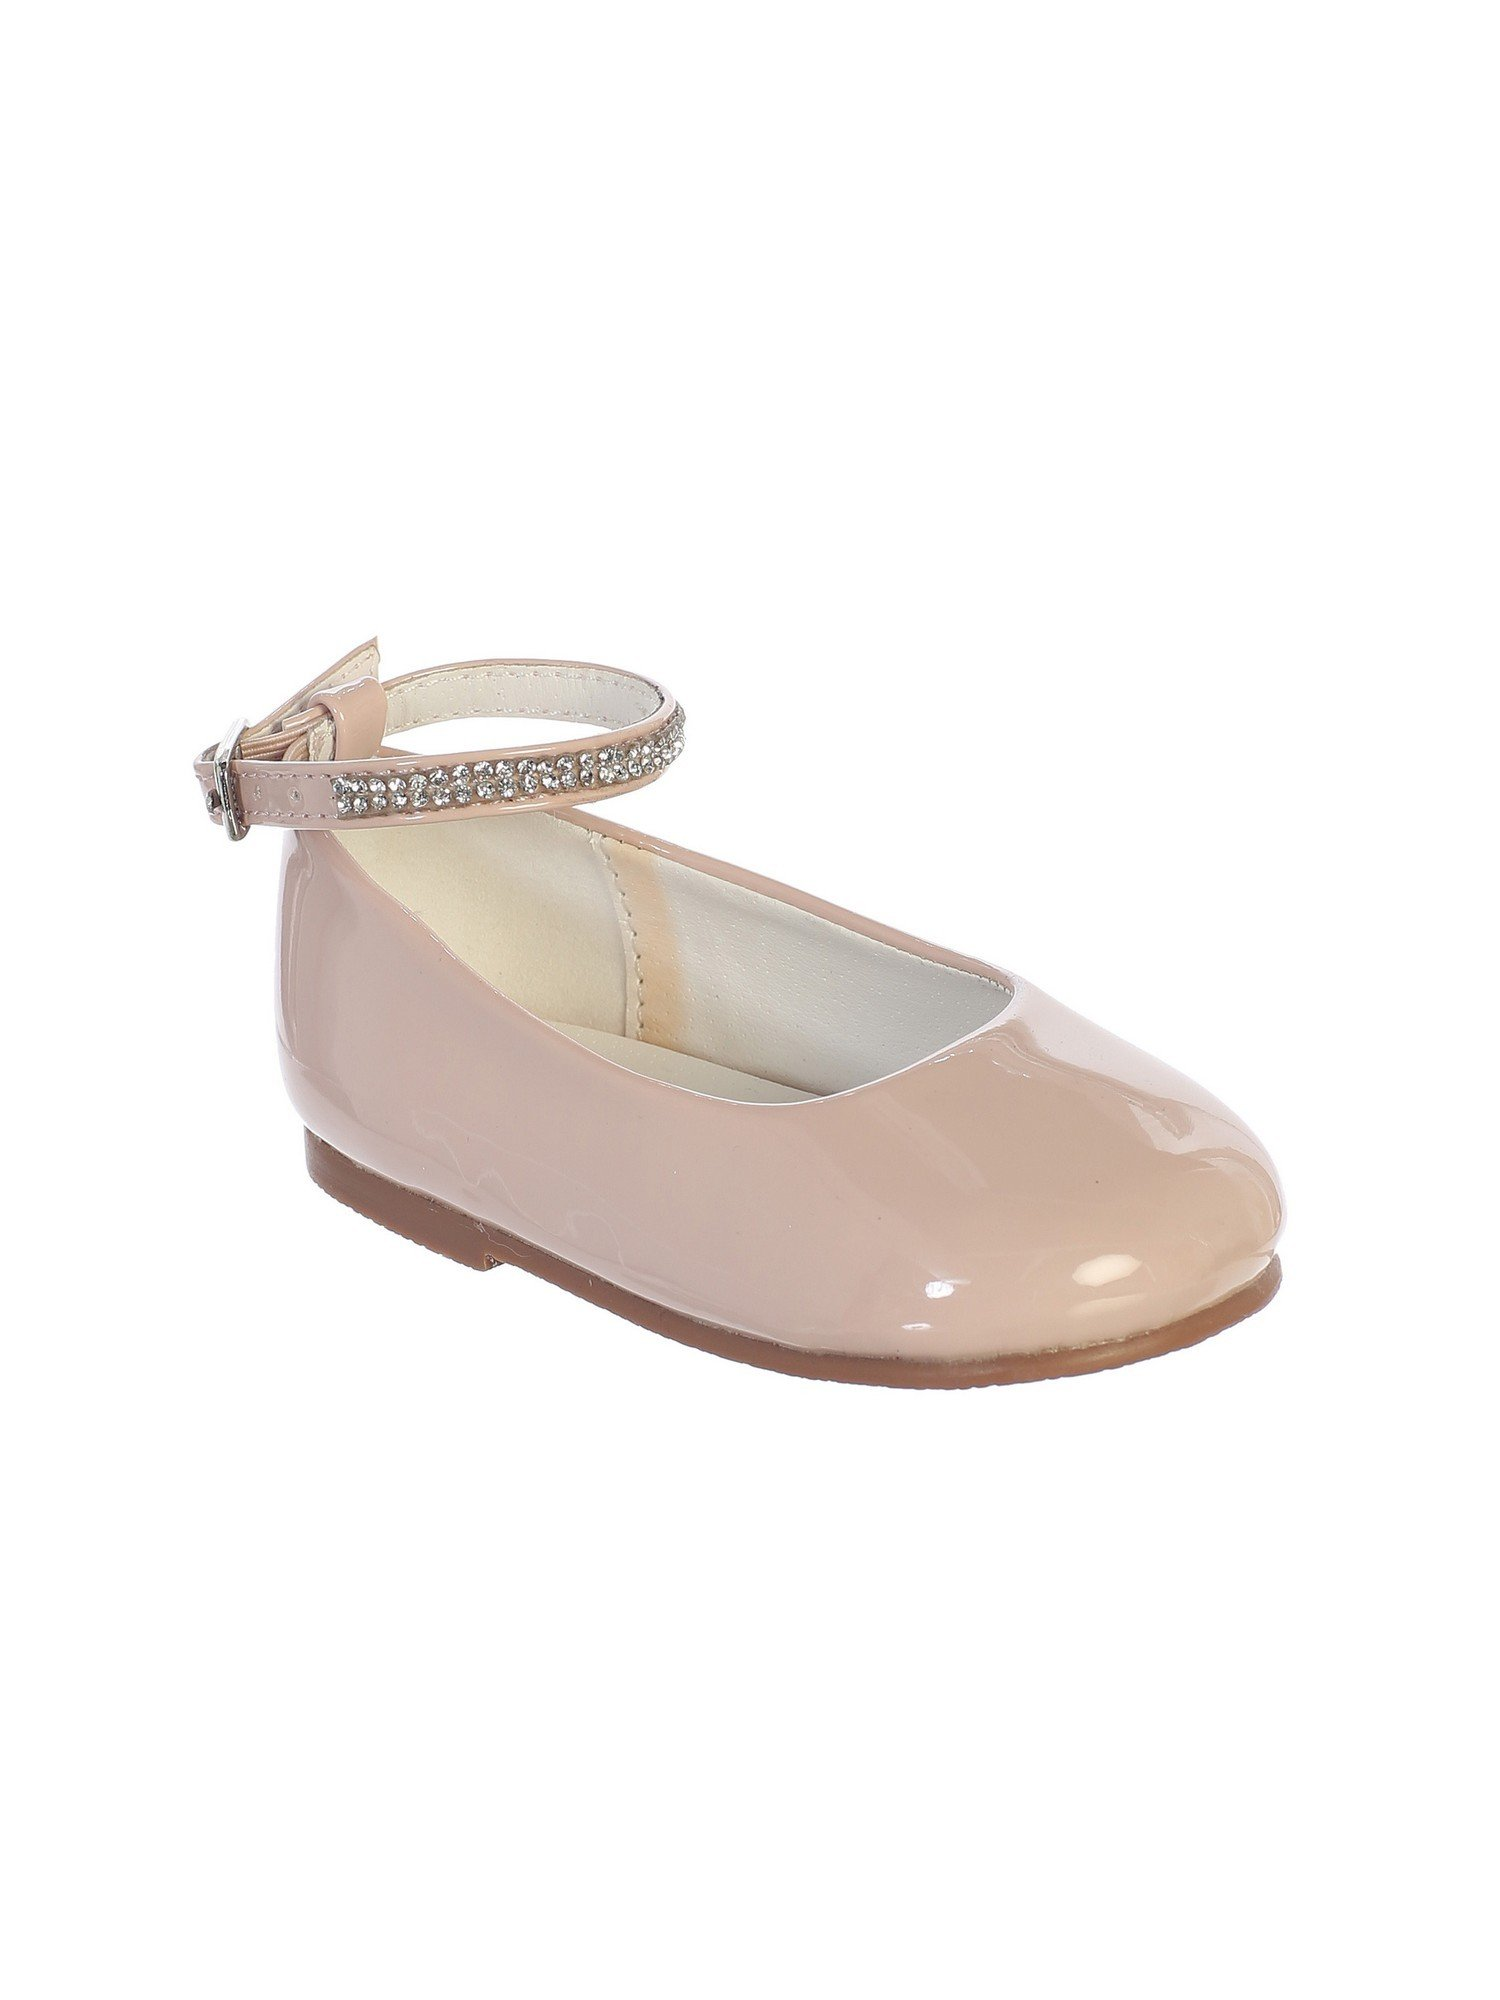 Little Girls Blush Patent Rhinestone Encrsuted Ankle Strap Flats 10 Toddler